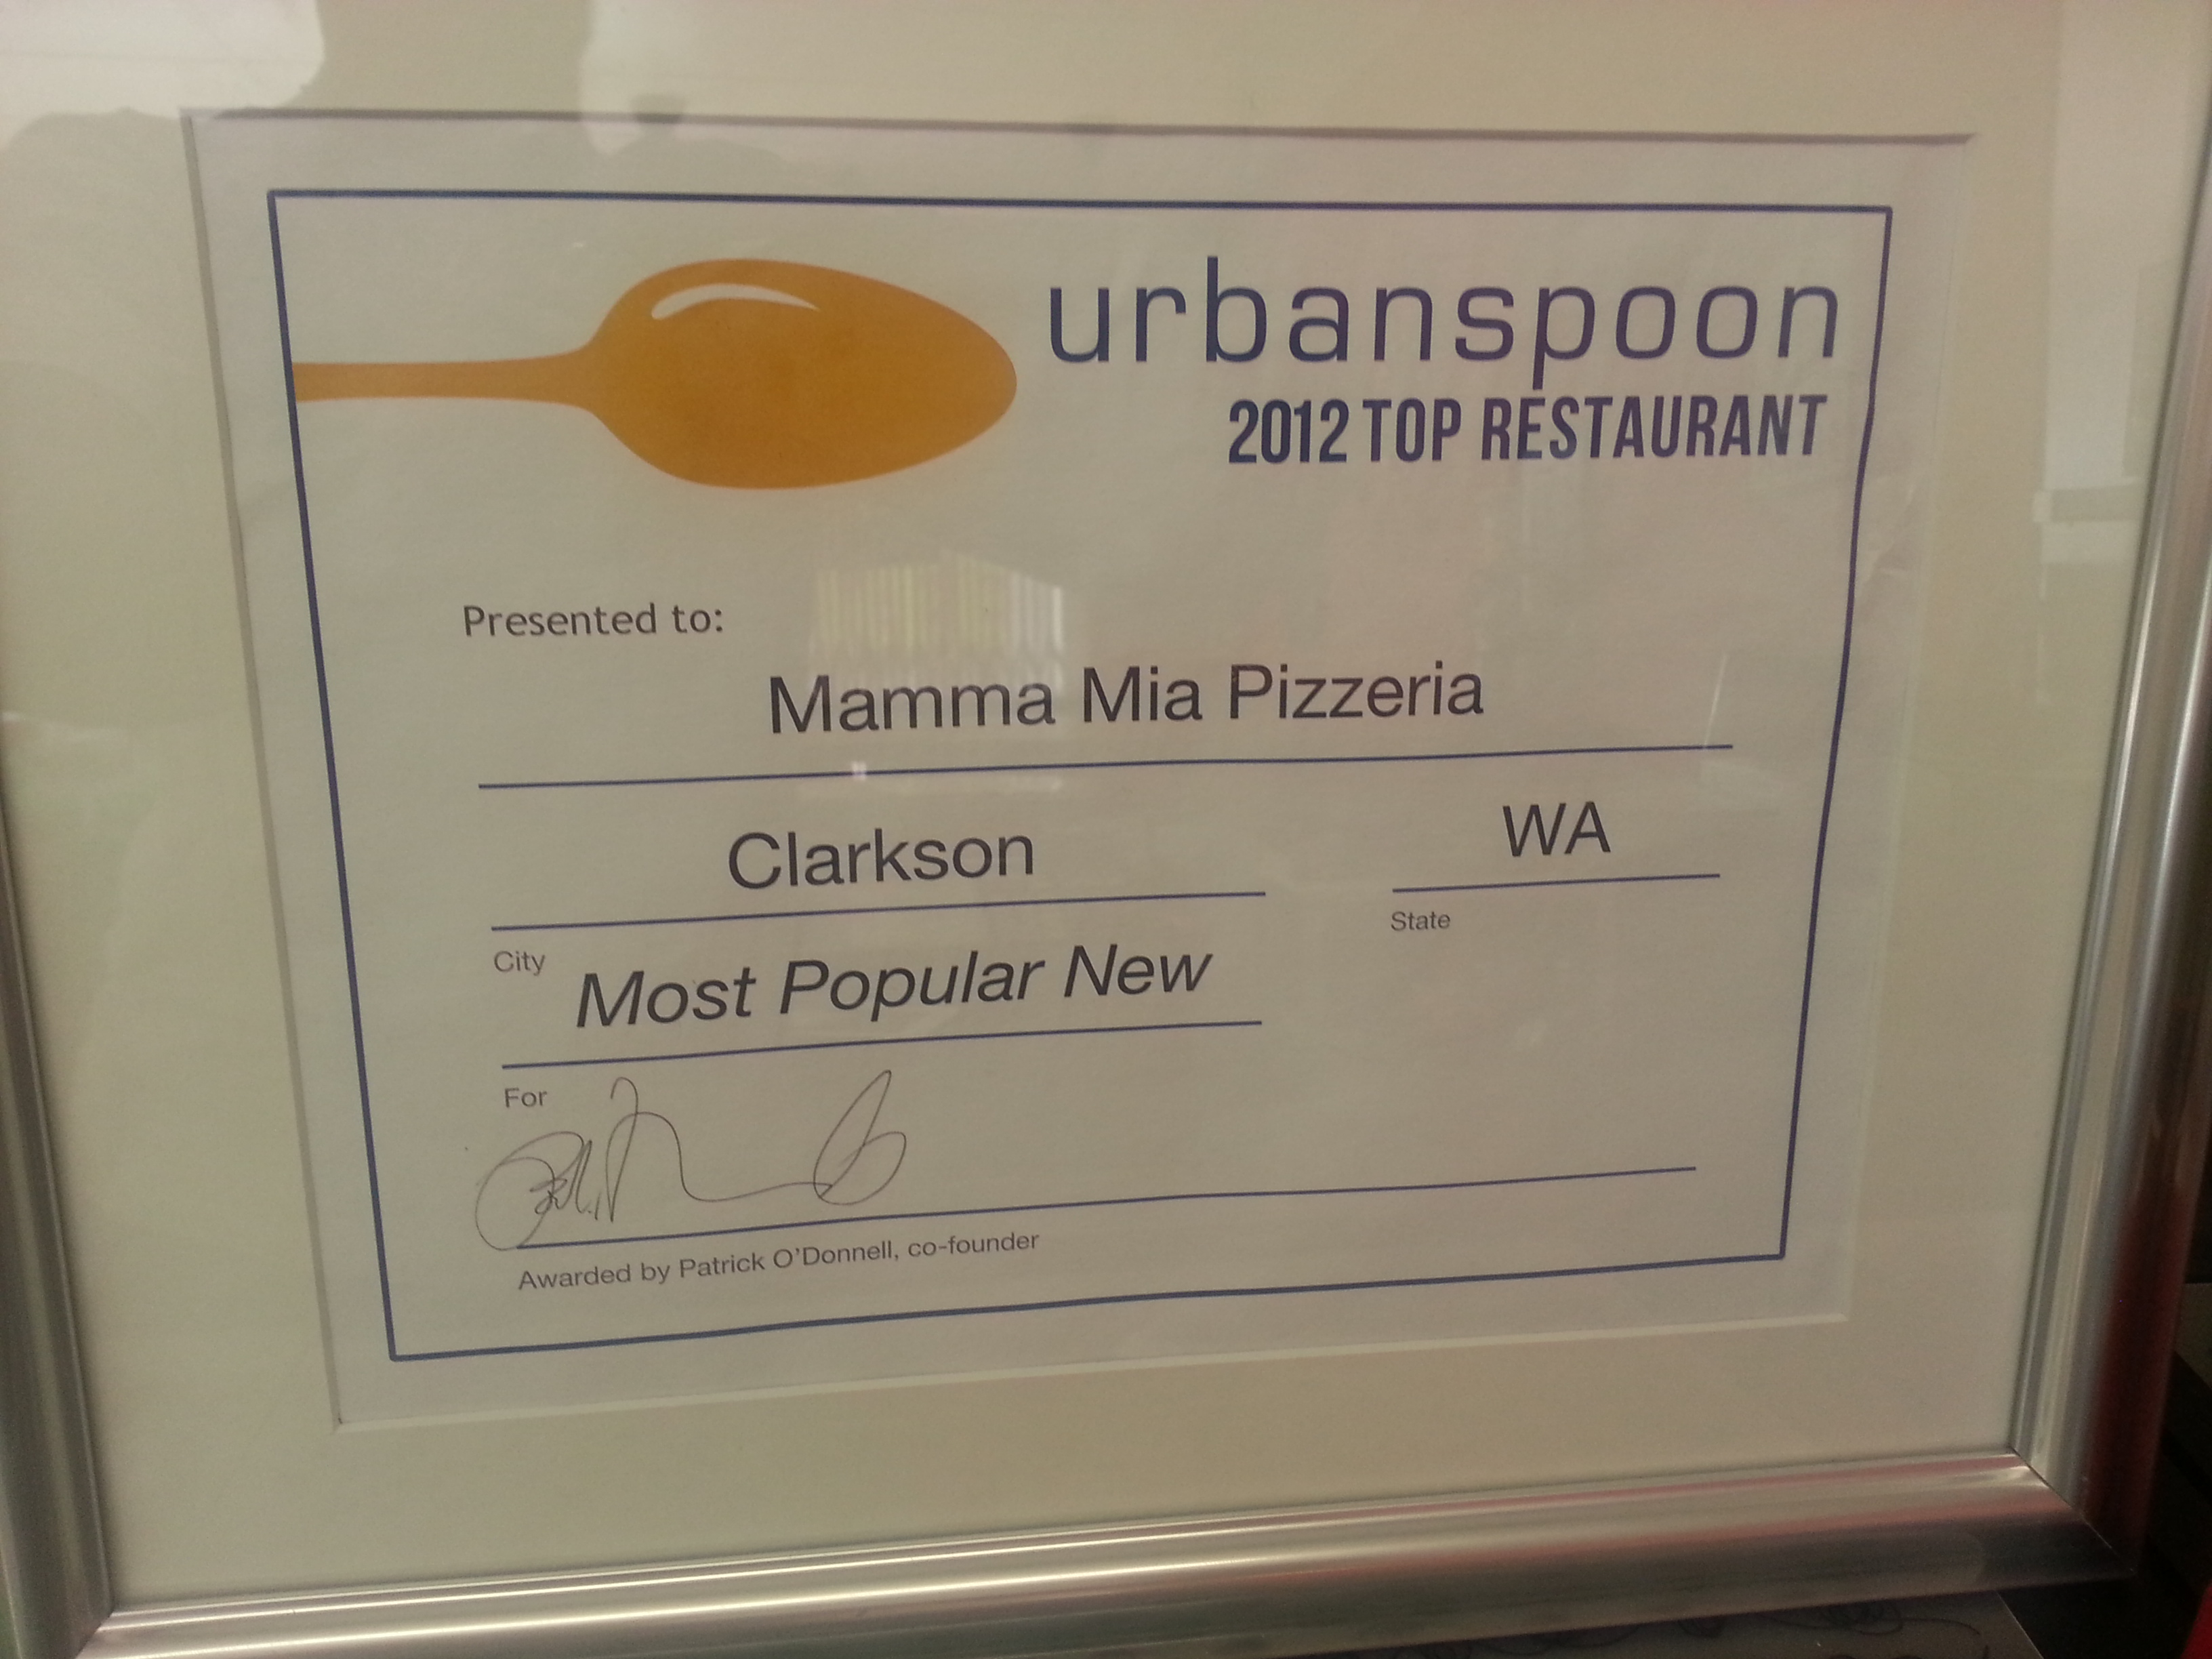 Voted by urbanspoon